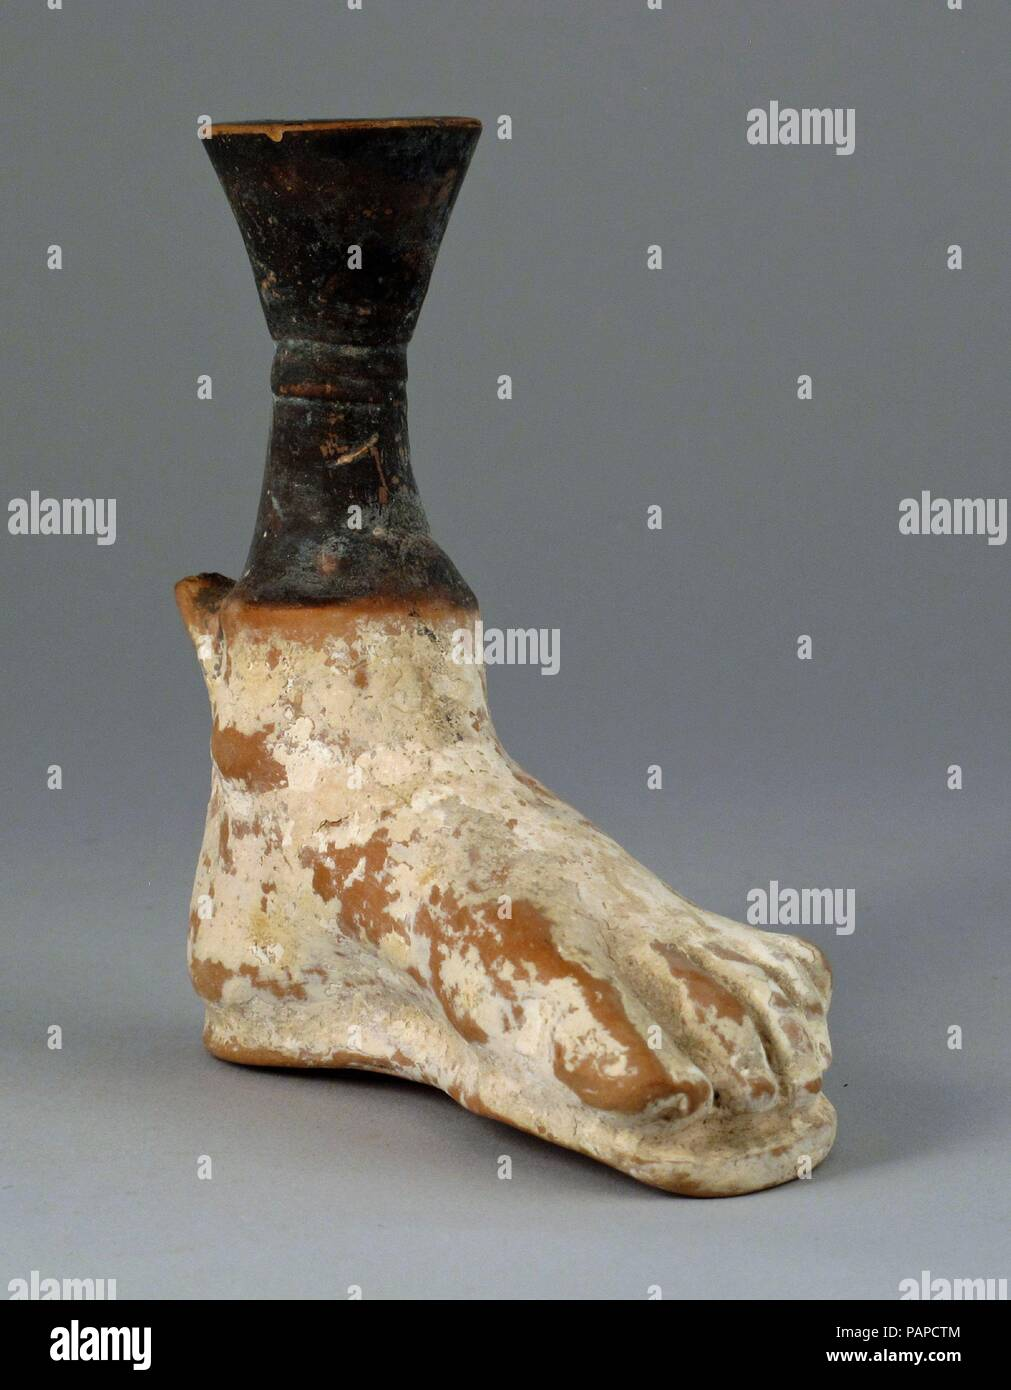 Aryballos in the form of a foot. Culture: Greek, Attic. Dimensions: Other: 3/8 × 1 5/16 × 3 7/16 × 1 in. (1 × 3.3 × 8.8 × 2.6 cm). Date: ca. 400 B.C..  In the shape of a left foot. Museum: Metropolitan Museum of Art, New York, USA. - Stock Image